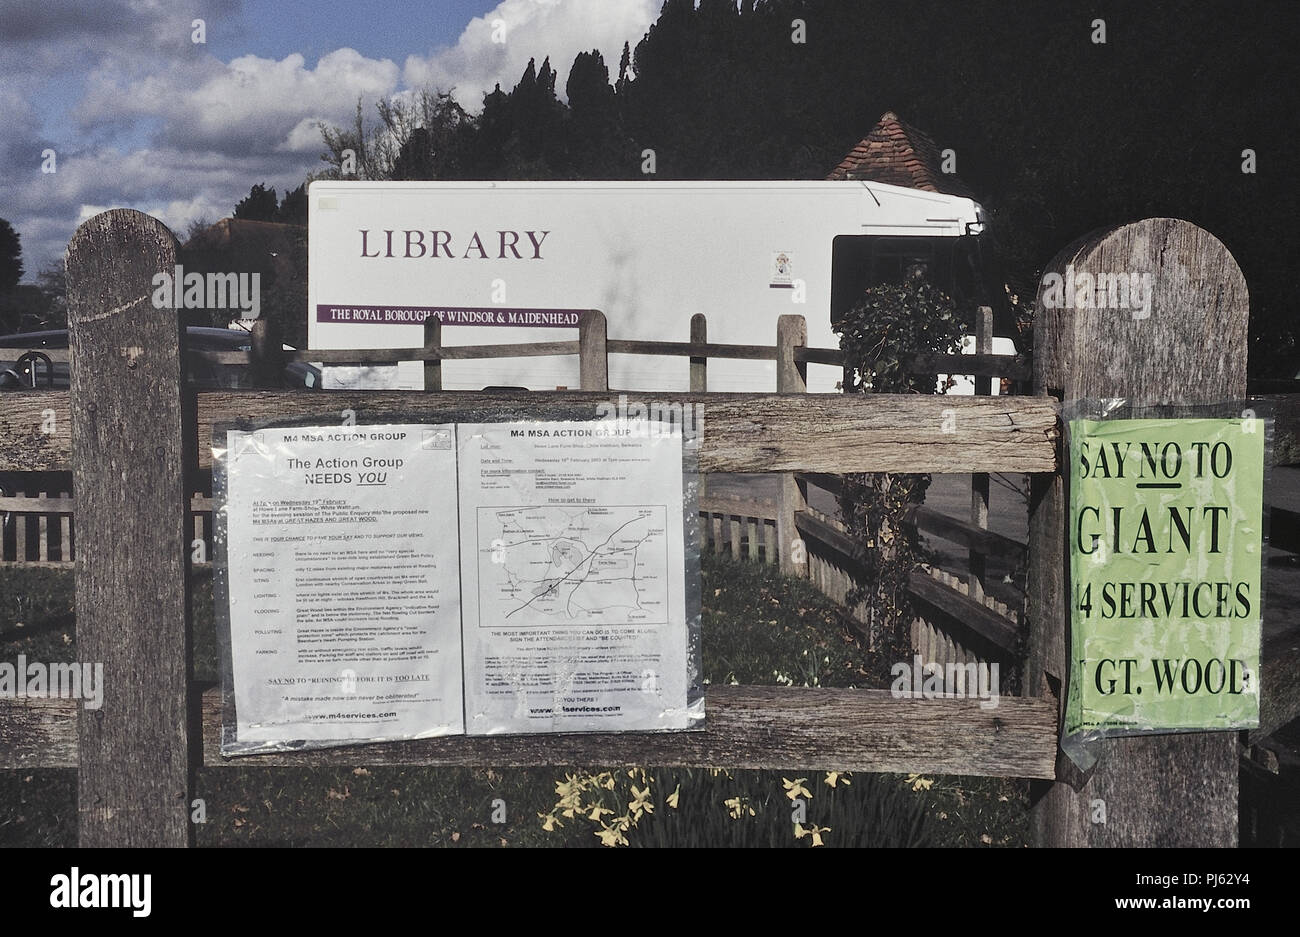 Local action group information opposing the planned M4 motorway service station at Great Hazes and Great Wood. Berks, England, UK. 2003 - Stock Image